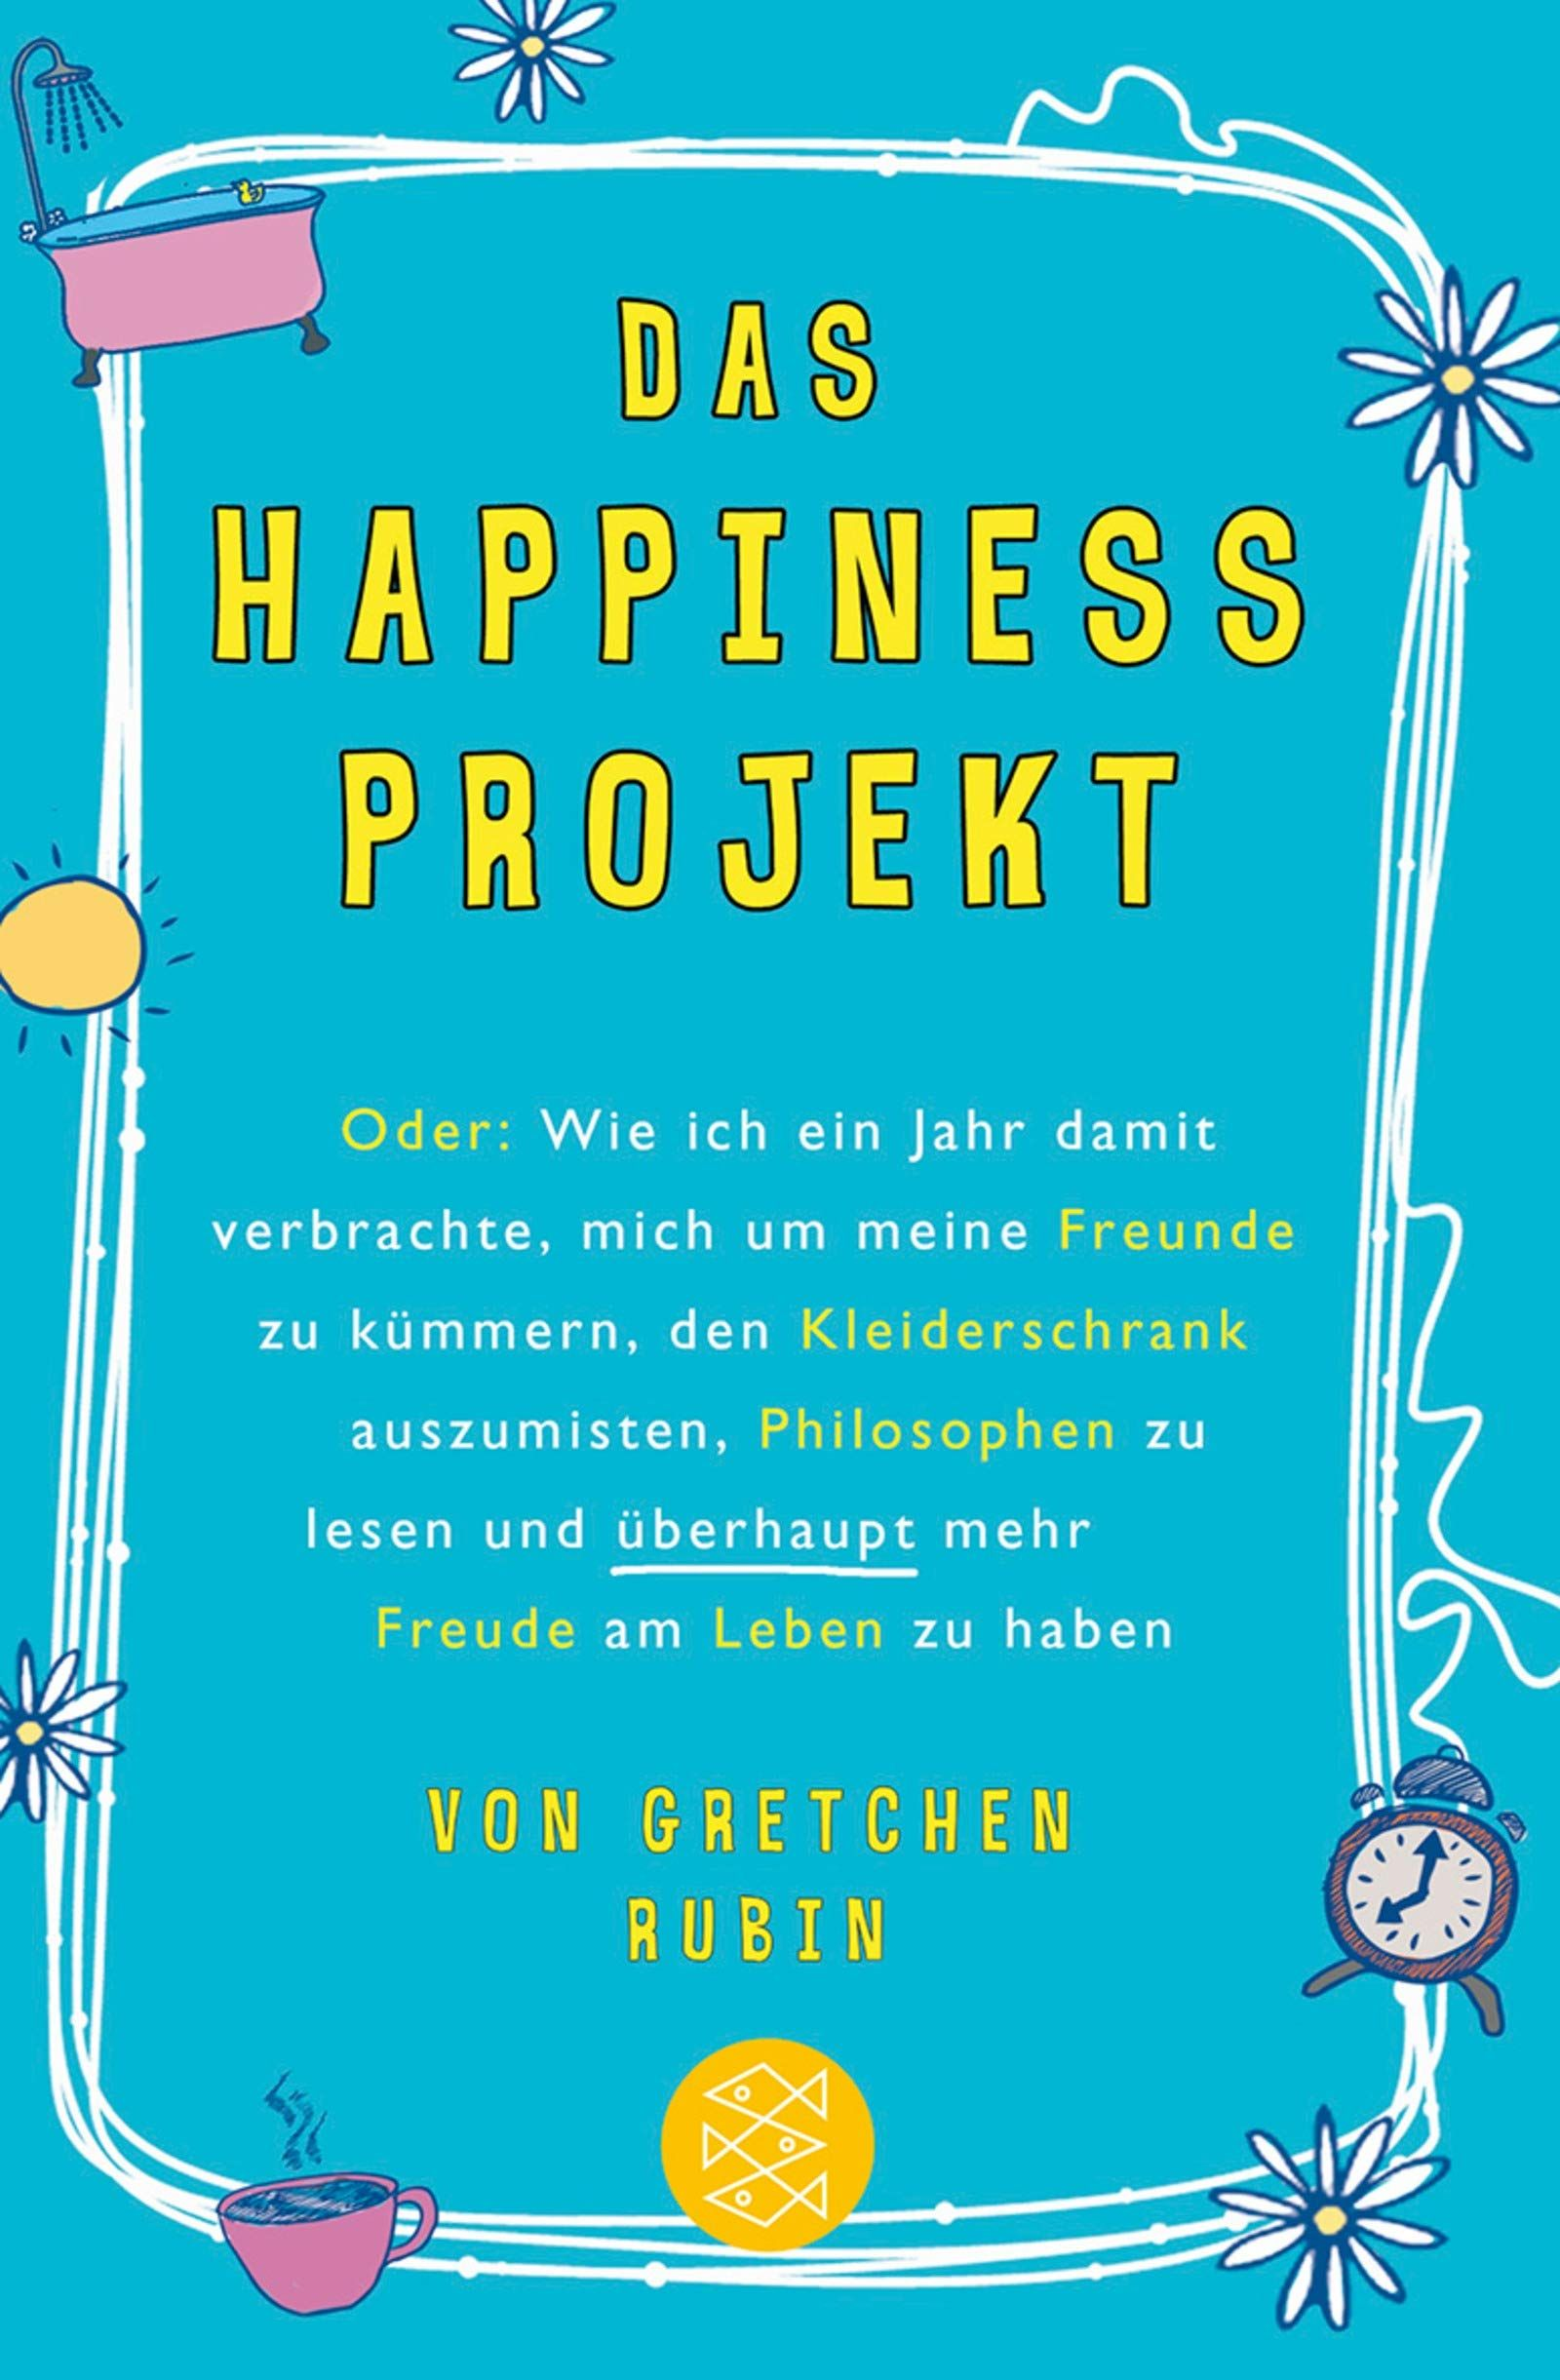 Shoppingliste_Ordnung_Happiness